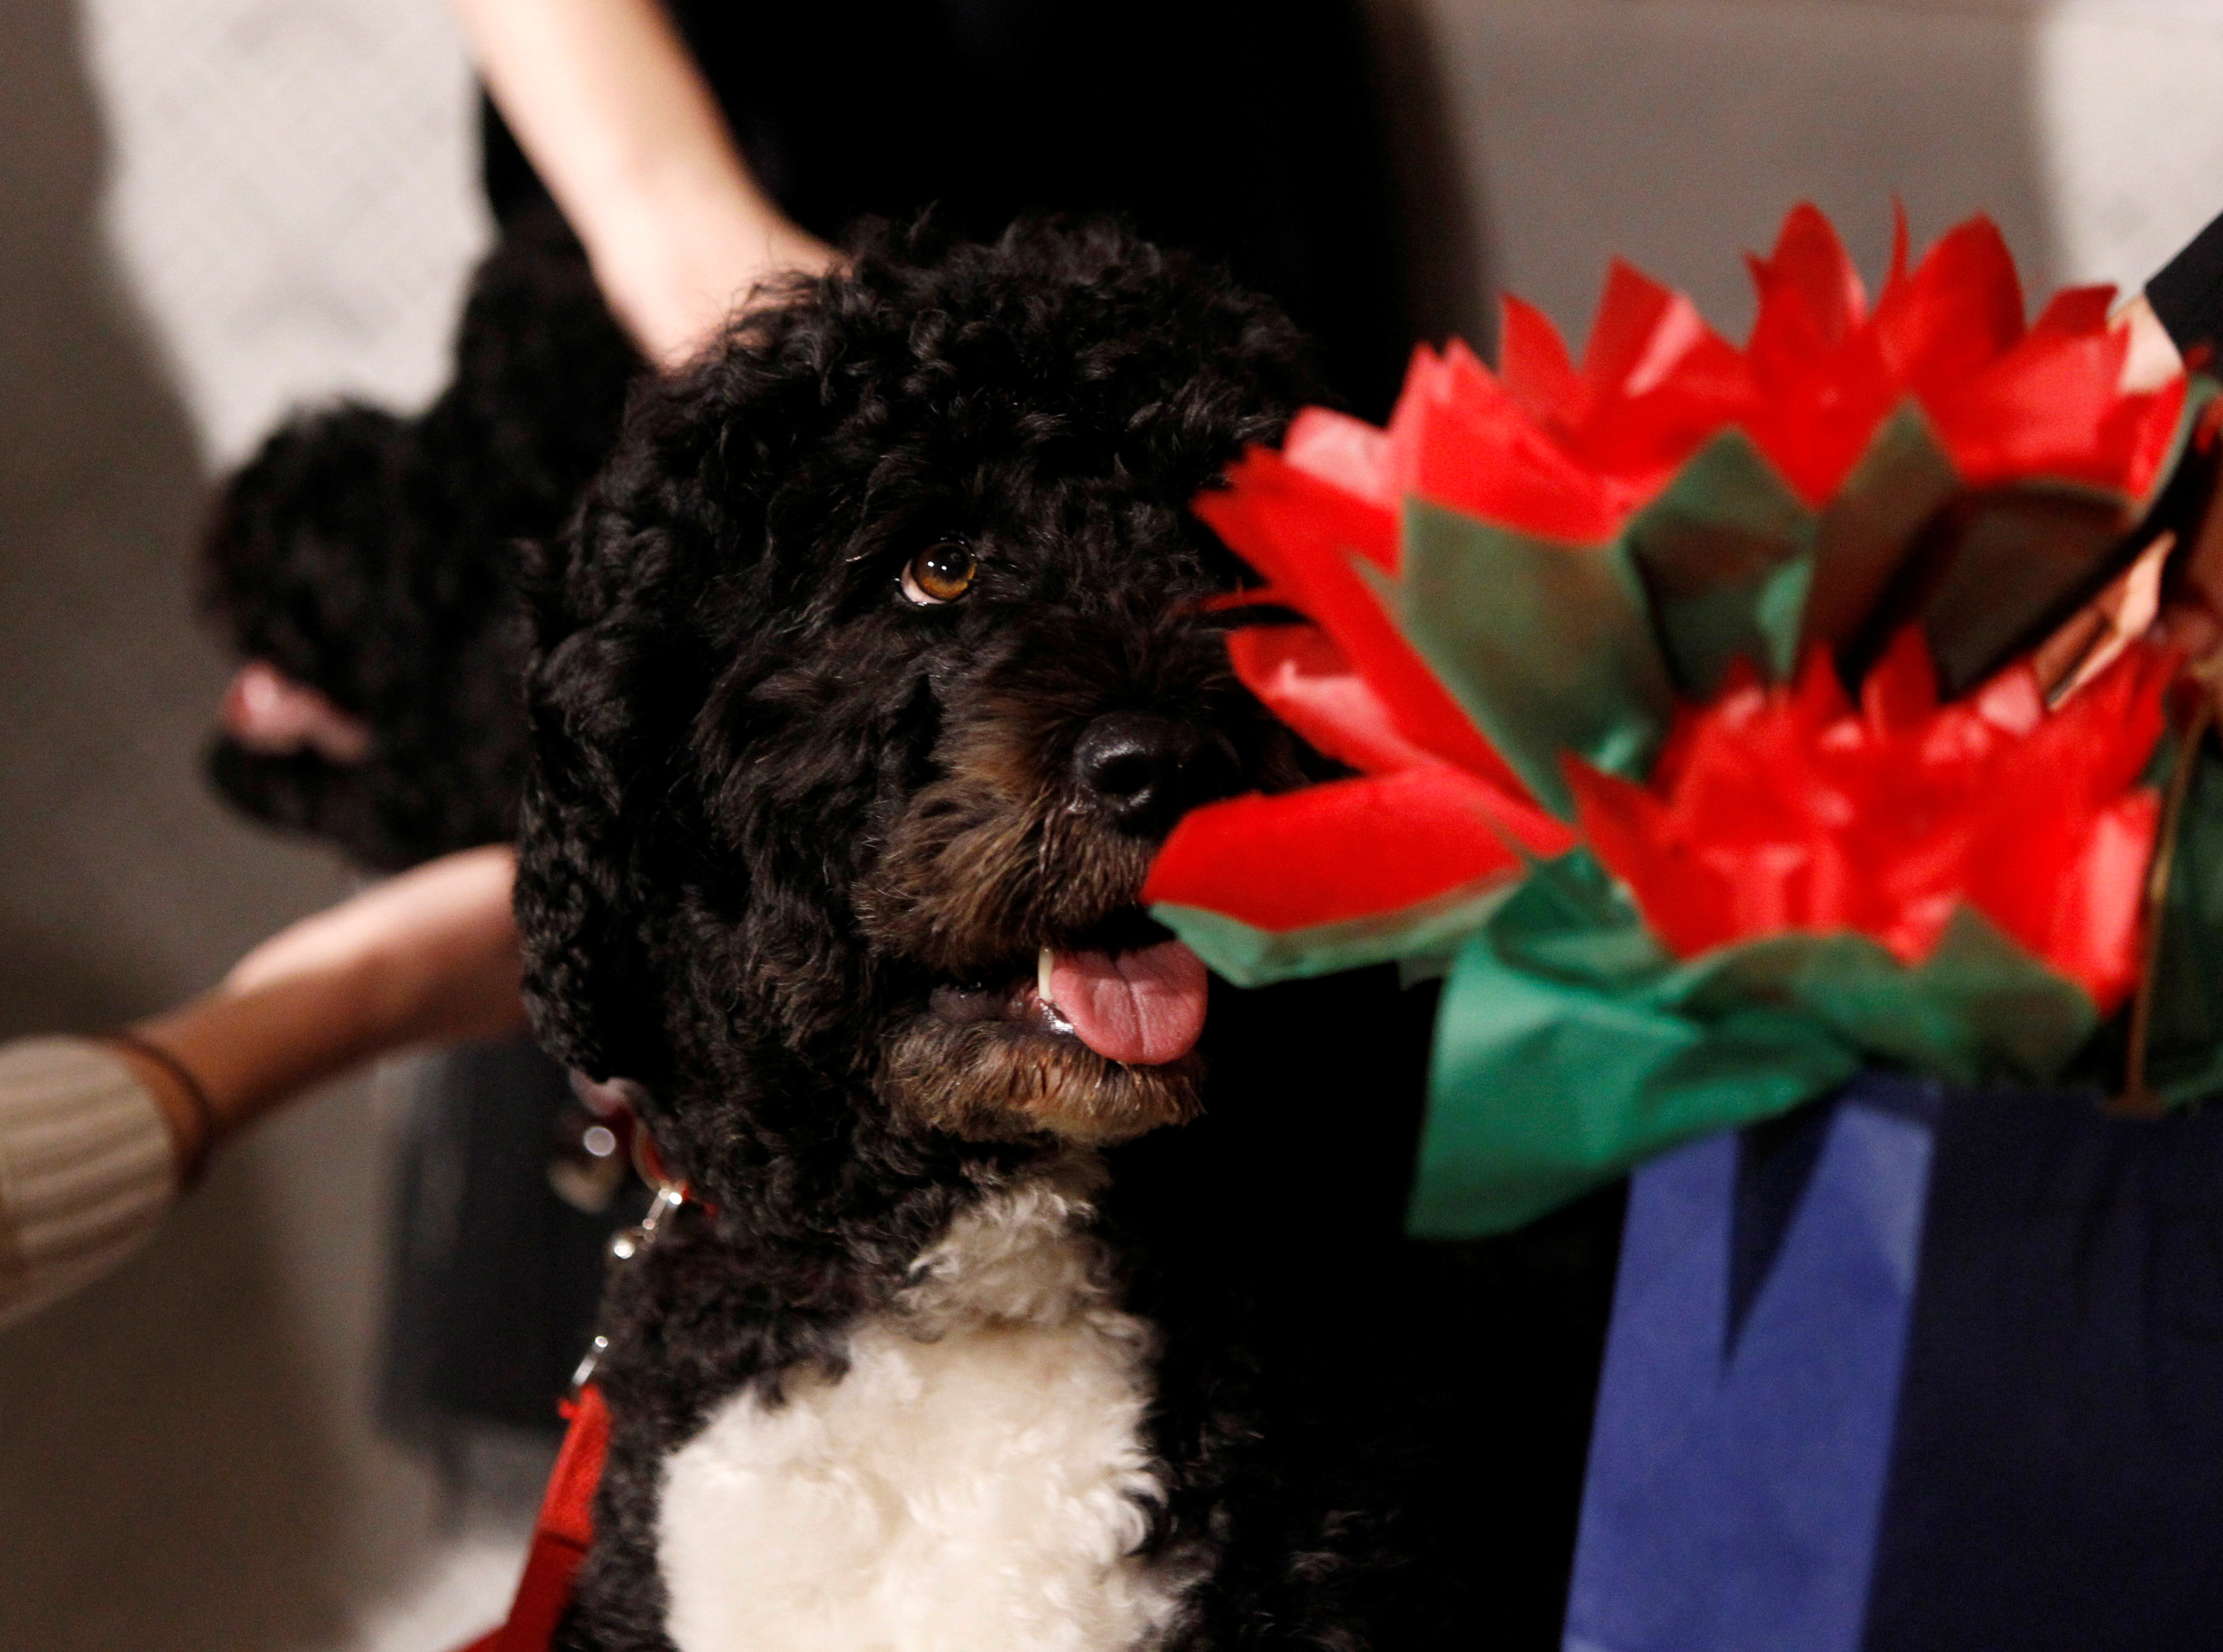 Bo, the older of two dogs belonging to the Obama family, is pictured at the unveiling of the Christmas decorations at the White House in Washington, December 4, 2013.       REUTERS/Jason Reed/File Photo